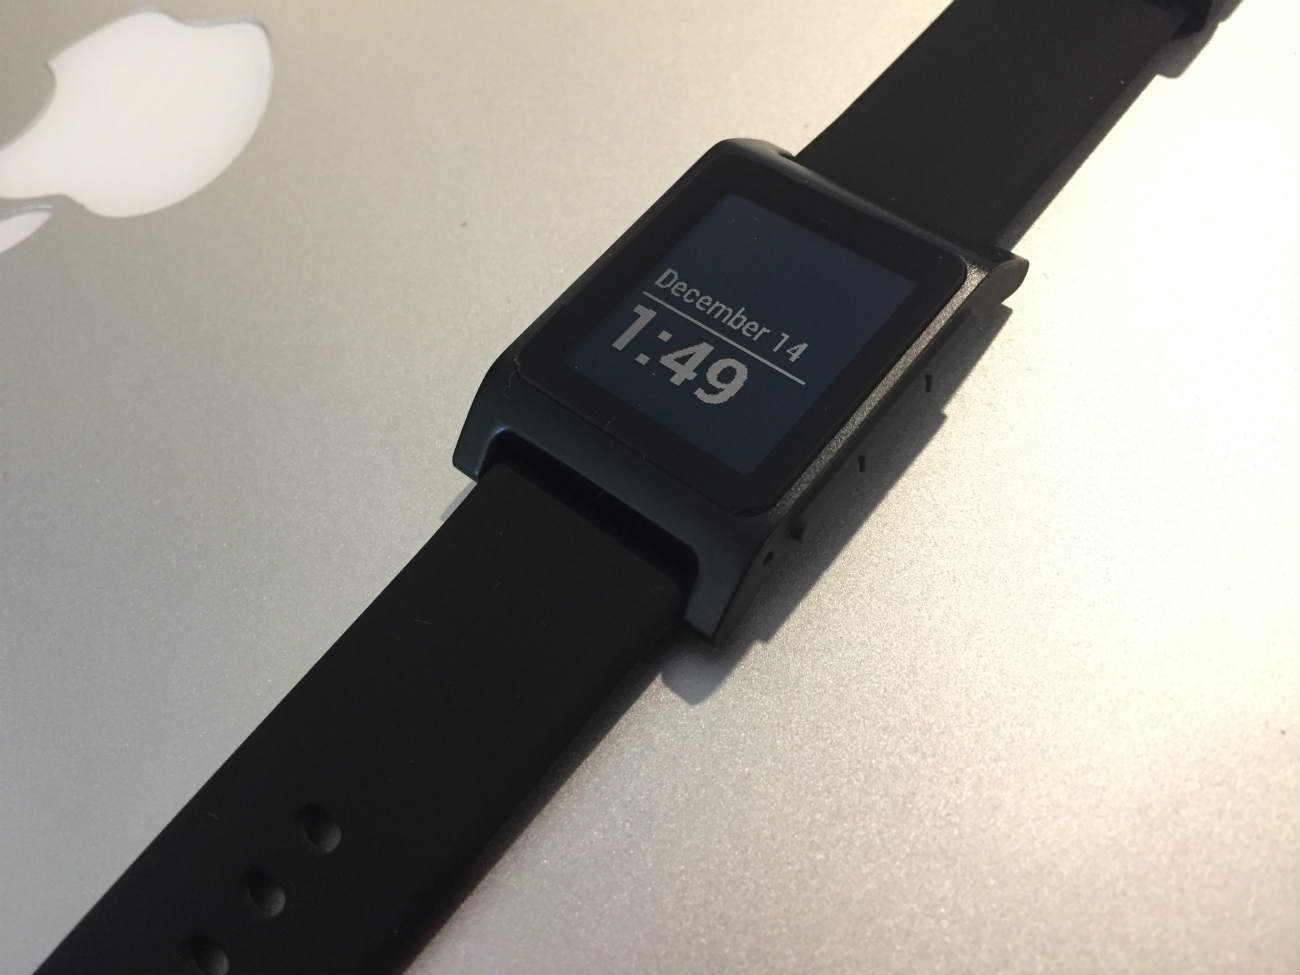 The Pebble 2 + Heart Rate